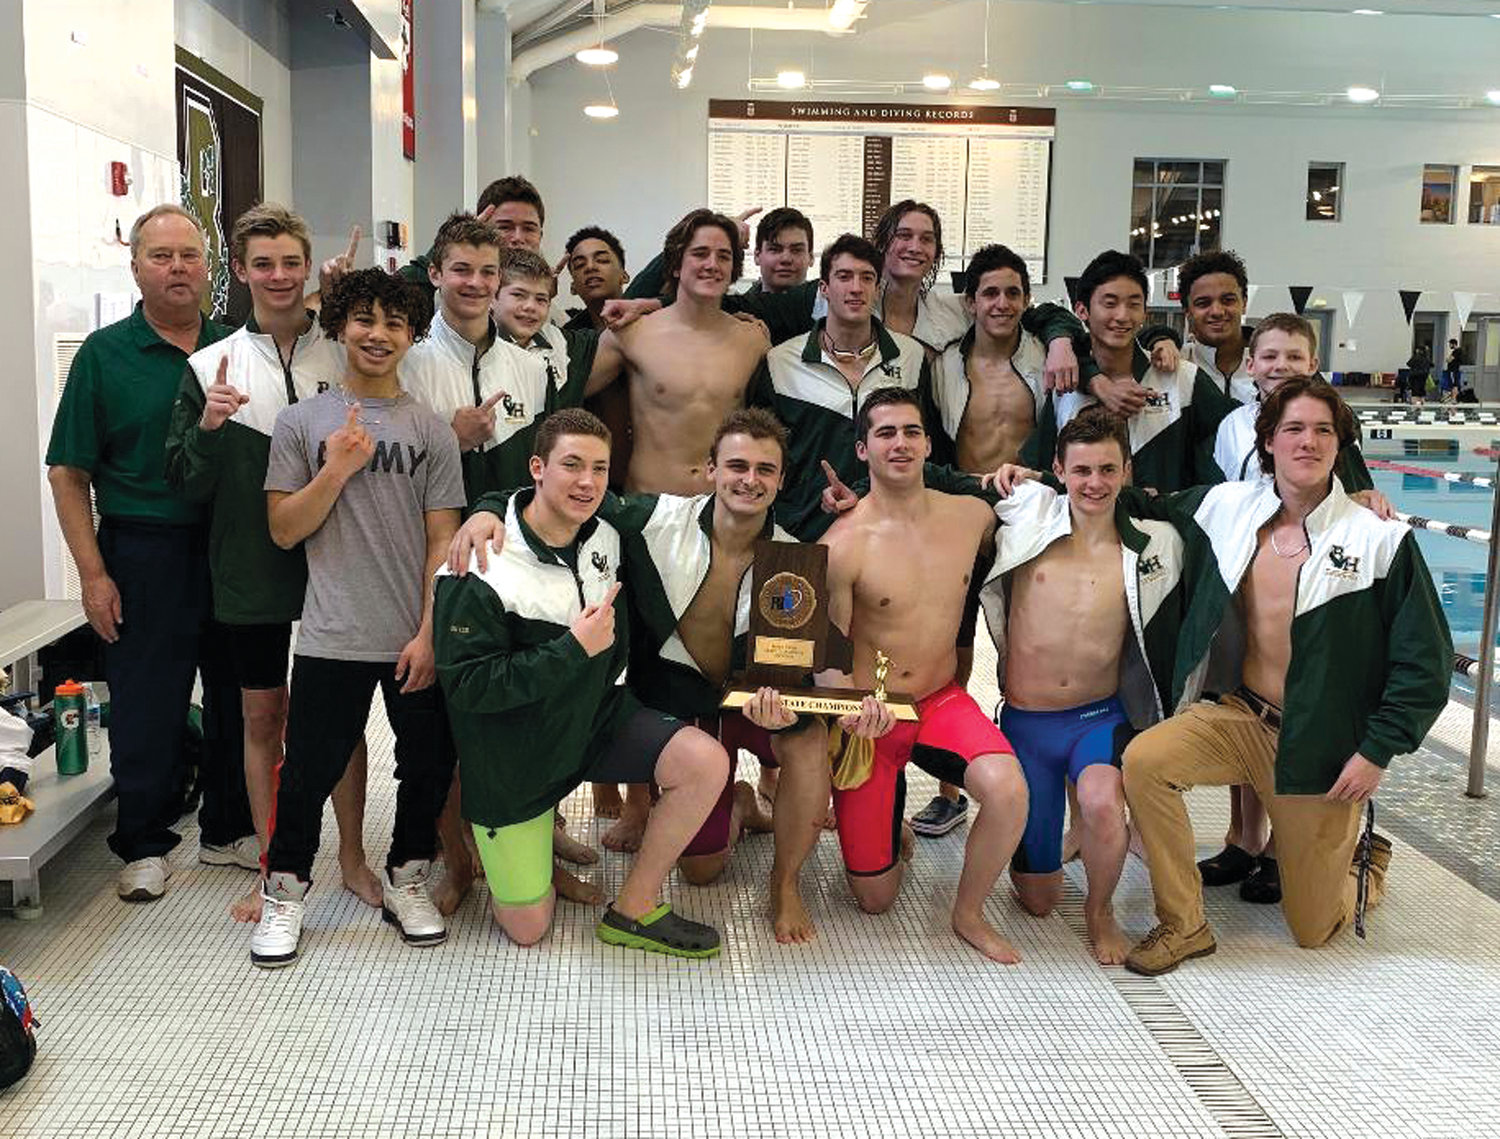 STATE CHAMPS: The Bishop Hendricken swim team after winning the state championship.